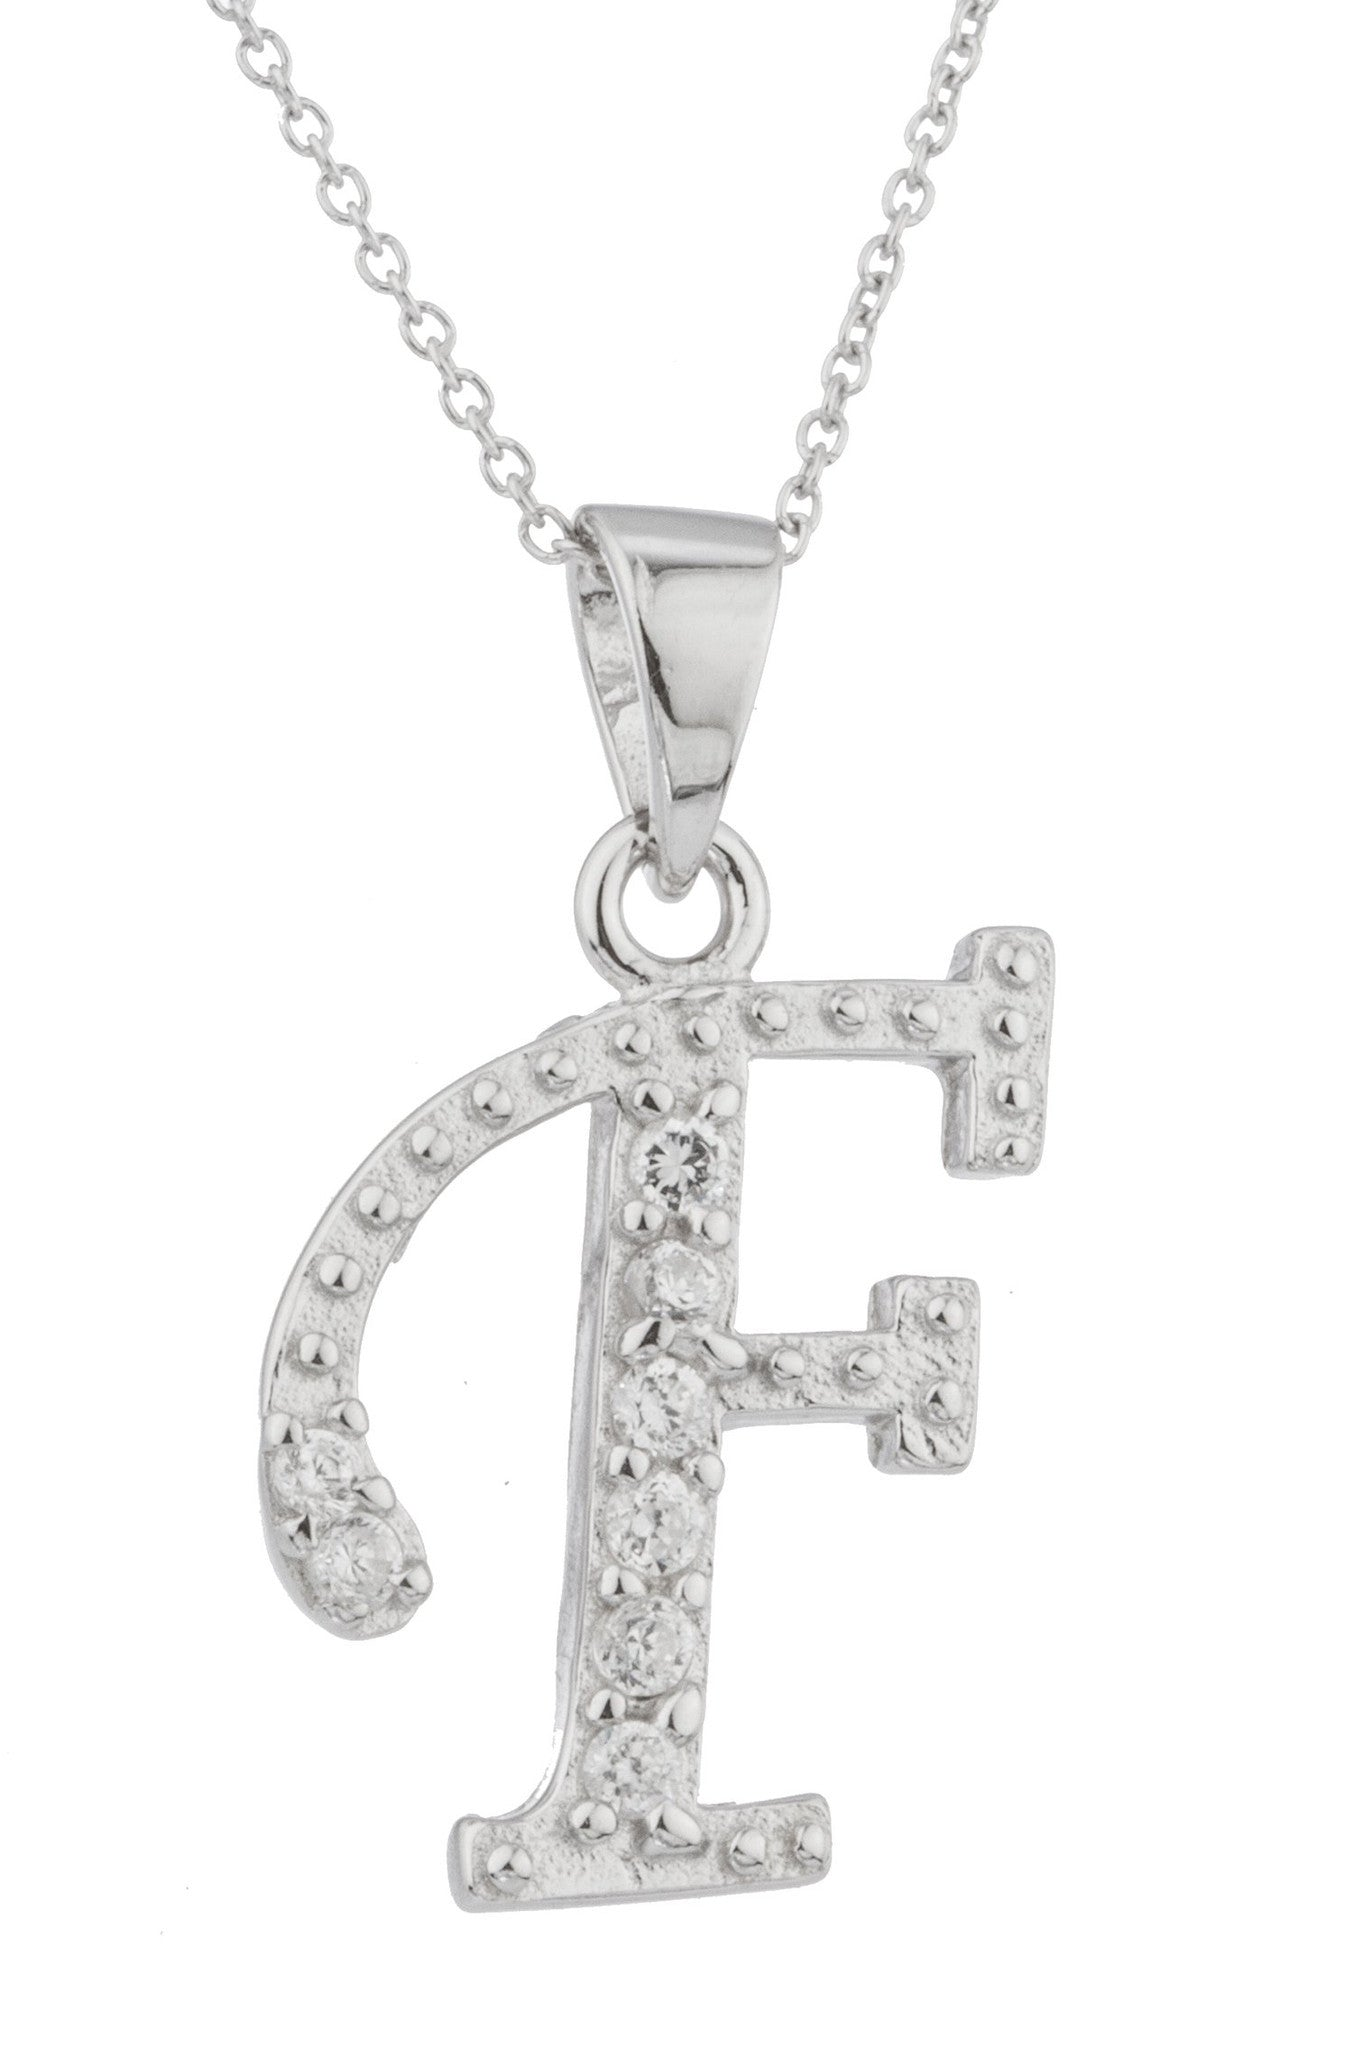 details j letter stylish pendant necklace alphabet gold shape steel titanium